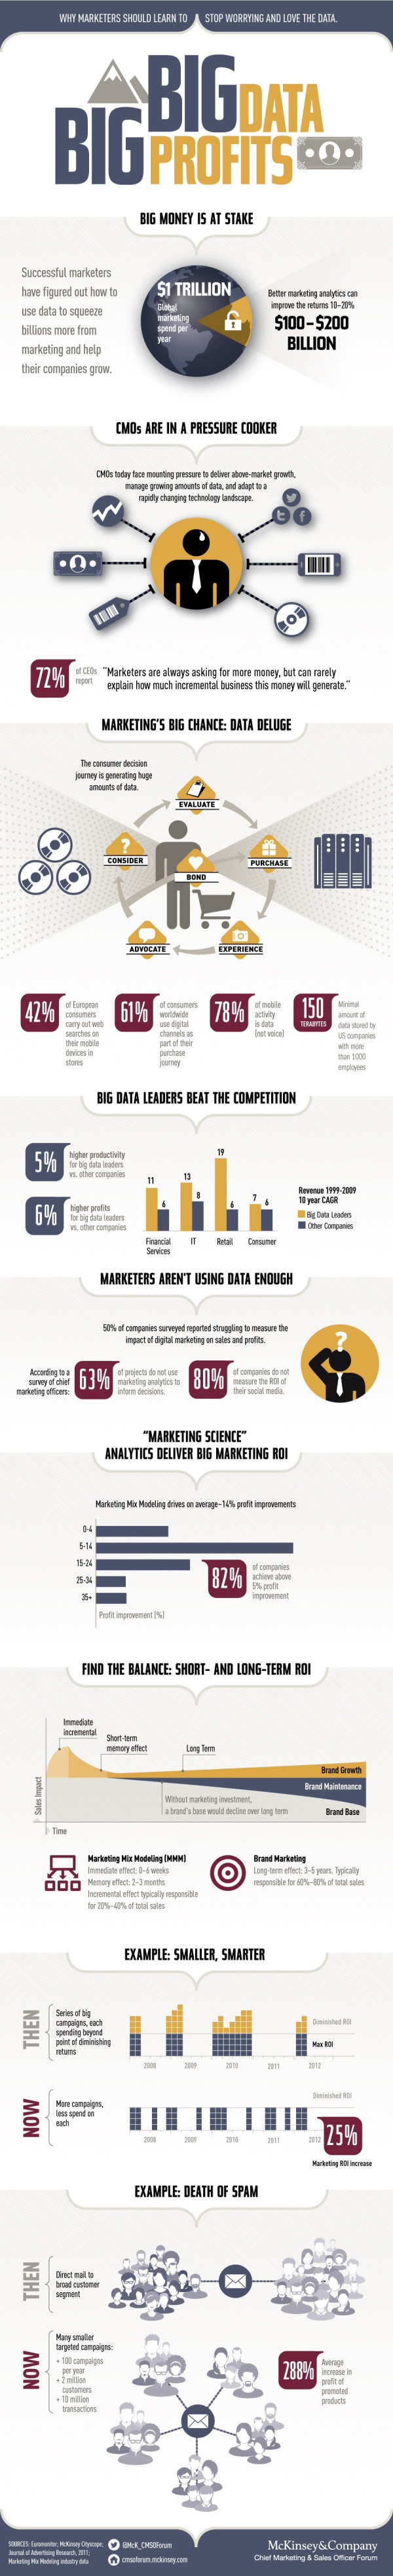 Infographic: Why Marketers Should a Learn to a Stop Worrying and Love the Data - McKinsey and Company